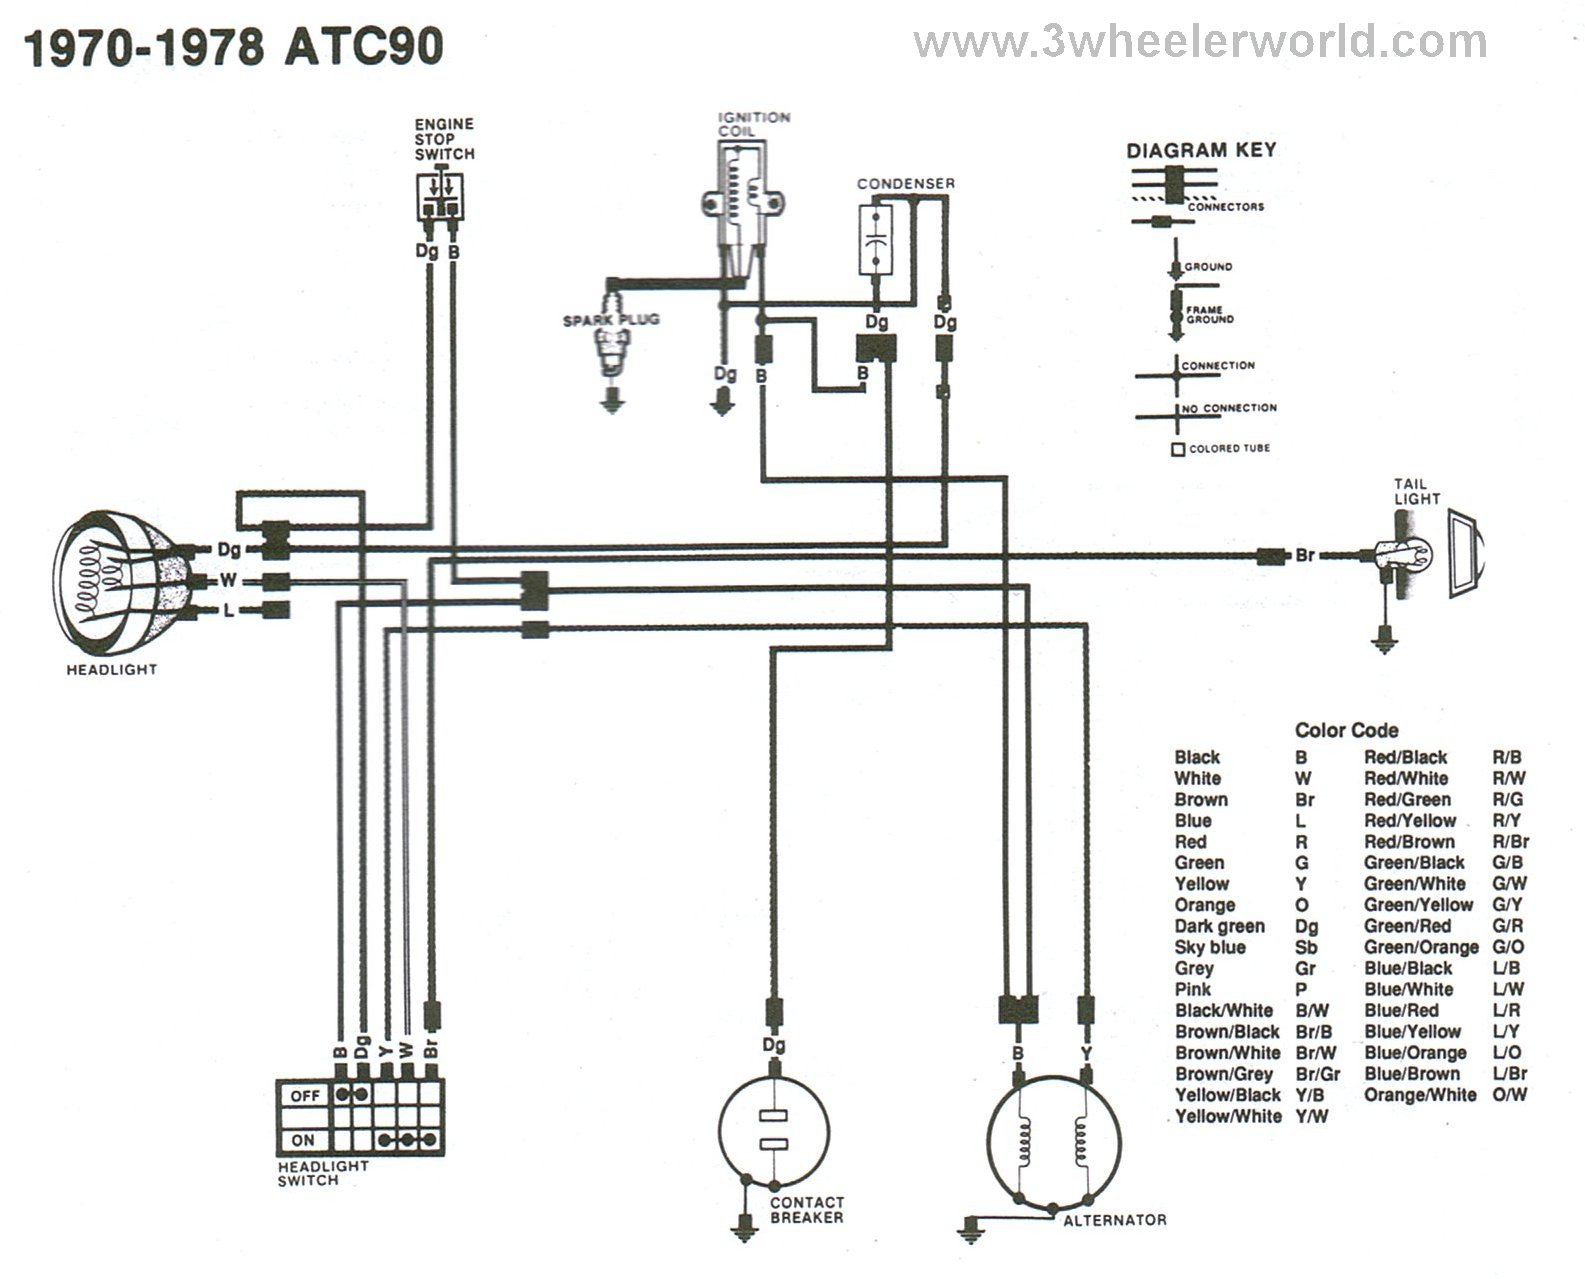 90cc 4 wheeler engine diagram  90cc  get free image about